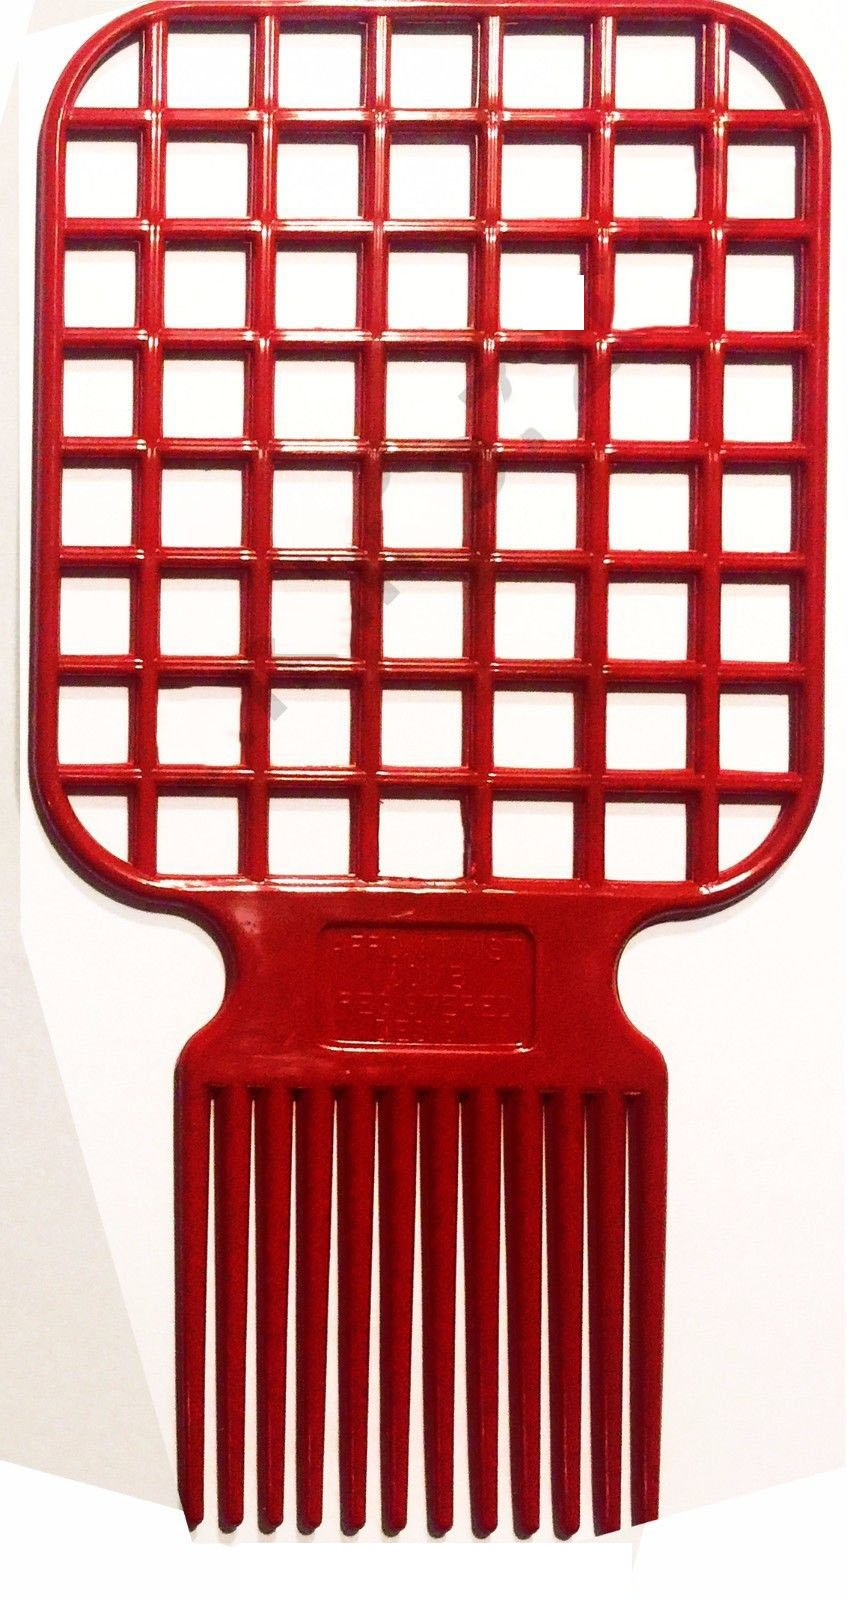 PAPE, Afro & Twist Comb (Red)-Barber Favored, Two in One as it is both an Afro and twisting comb